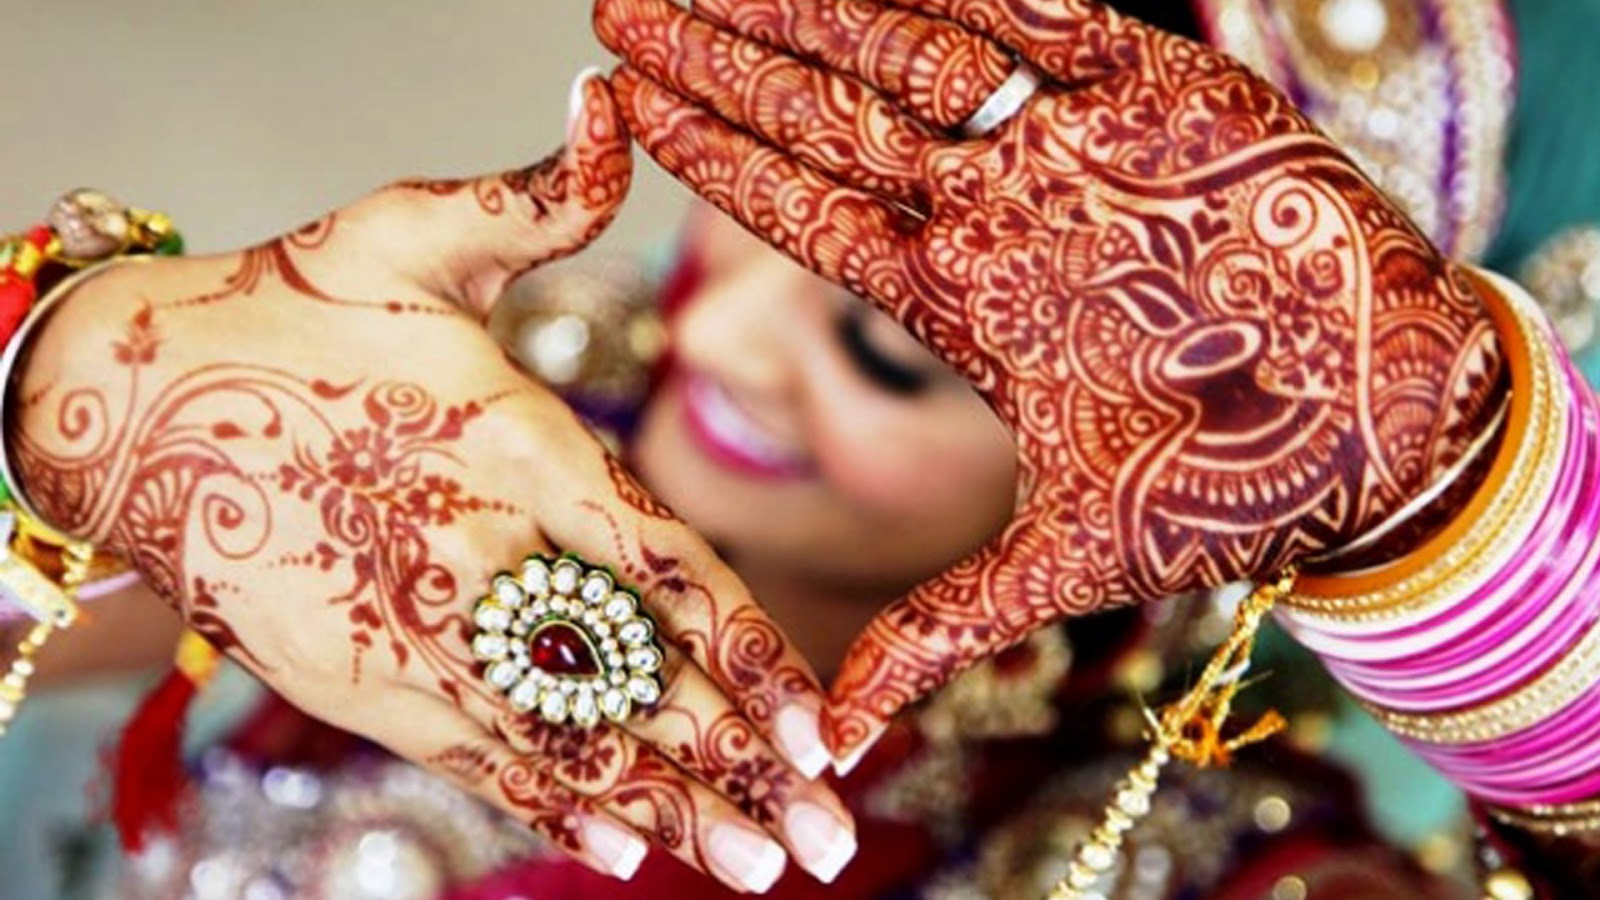 11 - 7 Vachan : 7 Promises in traditional Indian wedding